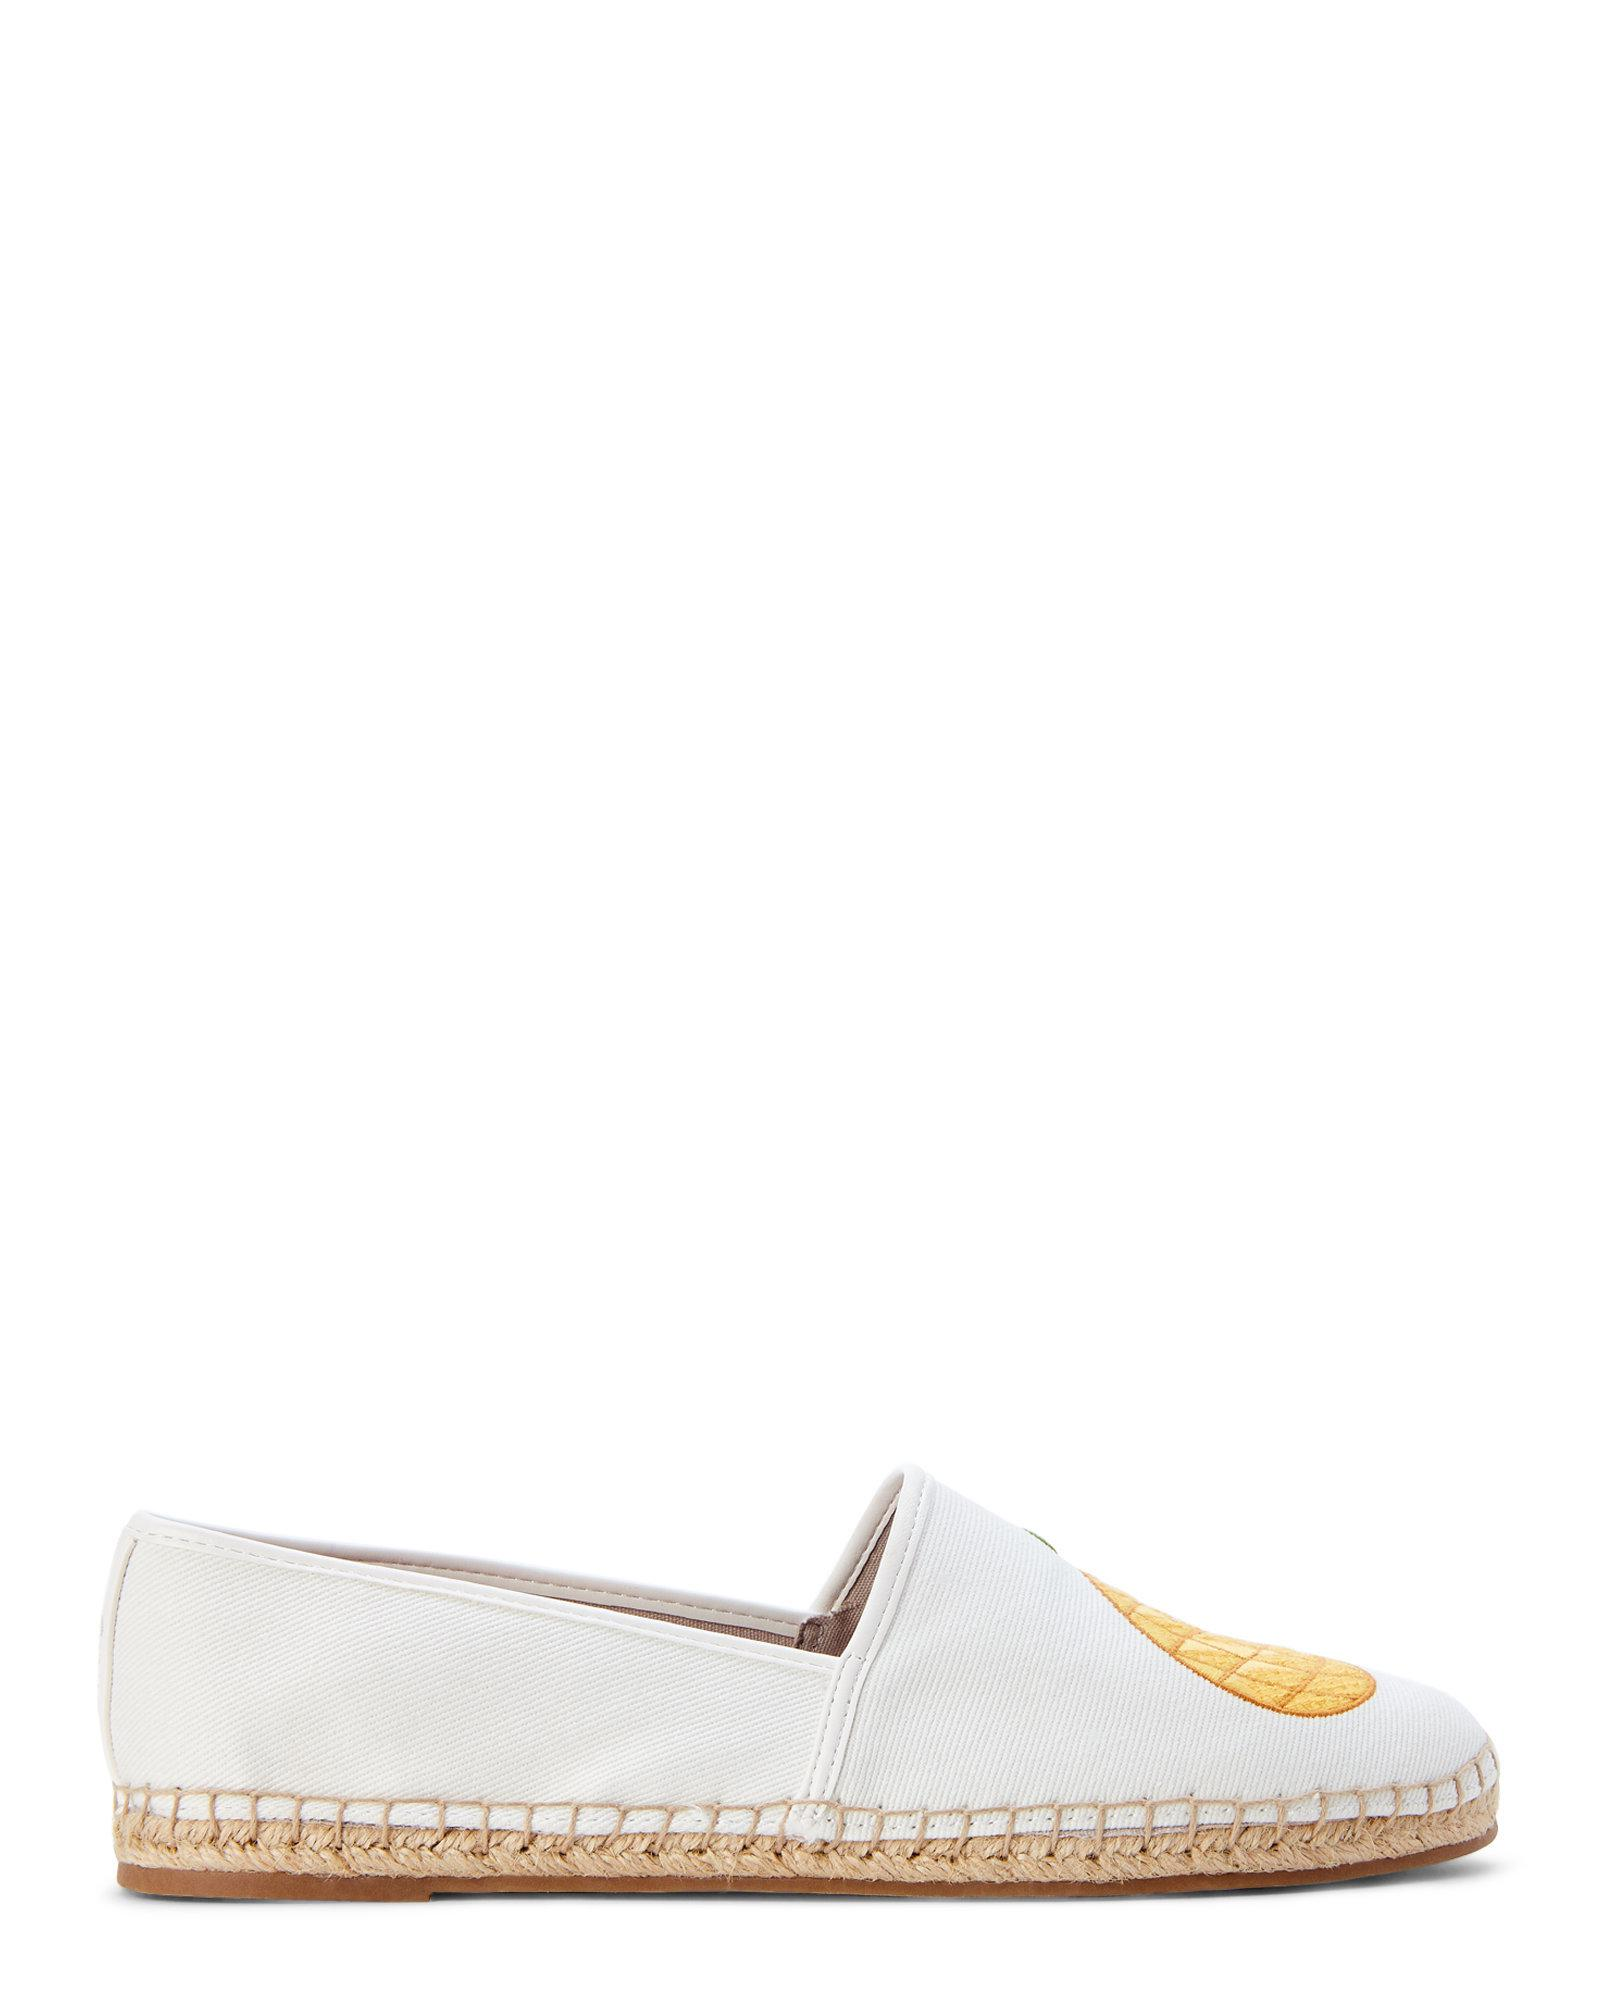 1e54cee86 Lyst - Circus by Sam Edelman Bright White Pineapple Palms Leni Flat ...